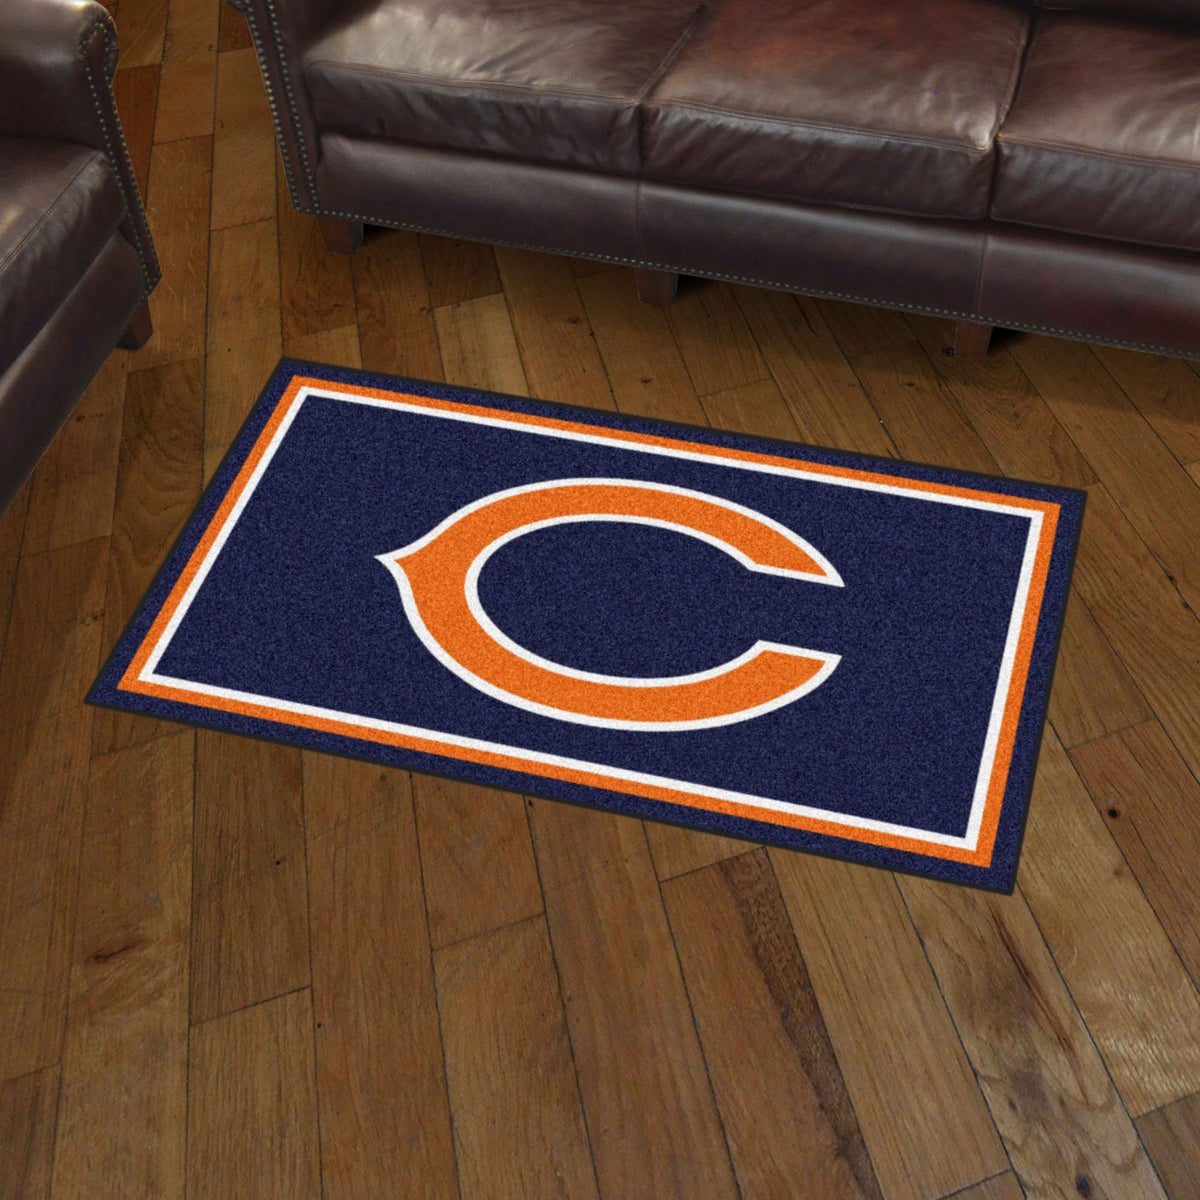 NFL - 3' x 5' Rug NFL Mats, Plush Rugs, 3x5 Rug, NFL, Home Fan Mats Chicago Bears